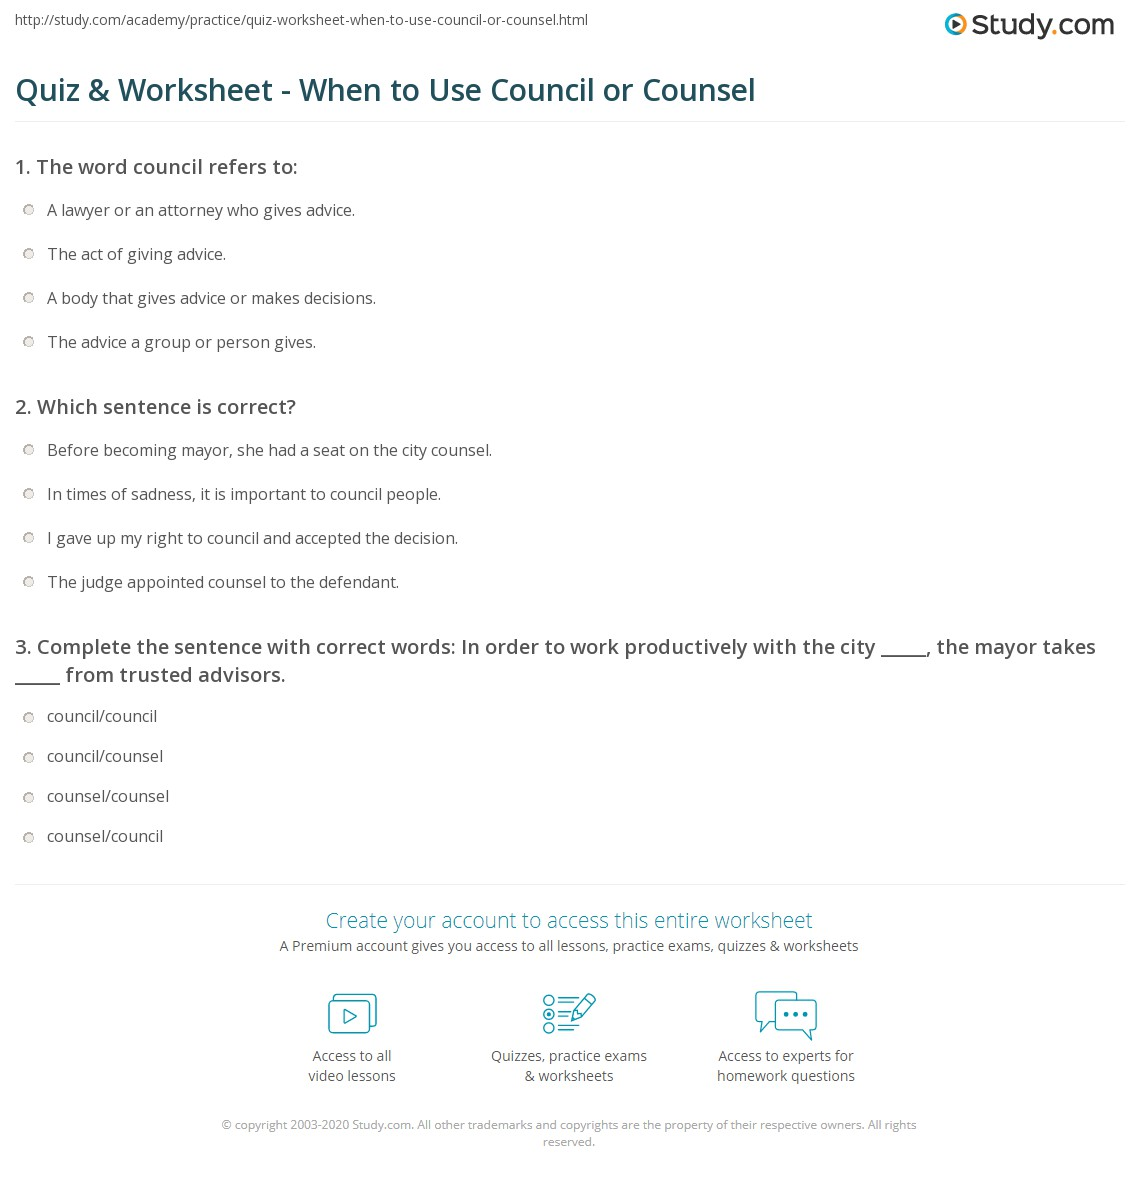 Quiz & Worksheet - When to Use Council or Counsel | Study com